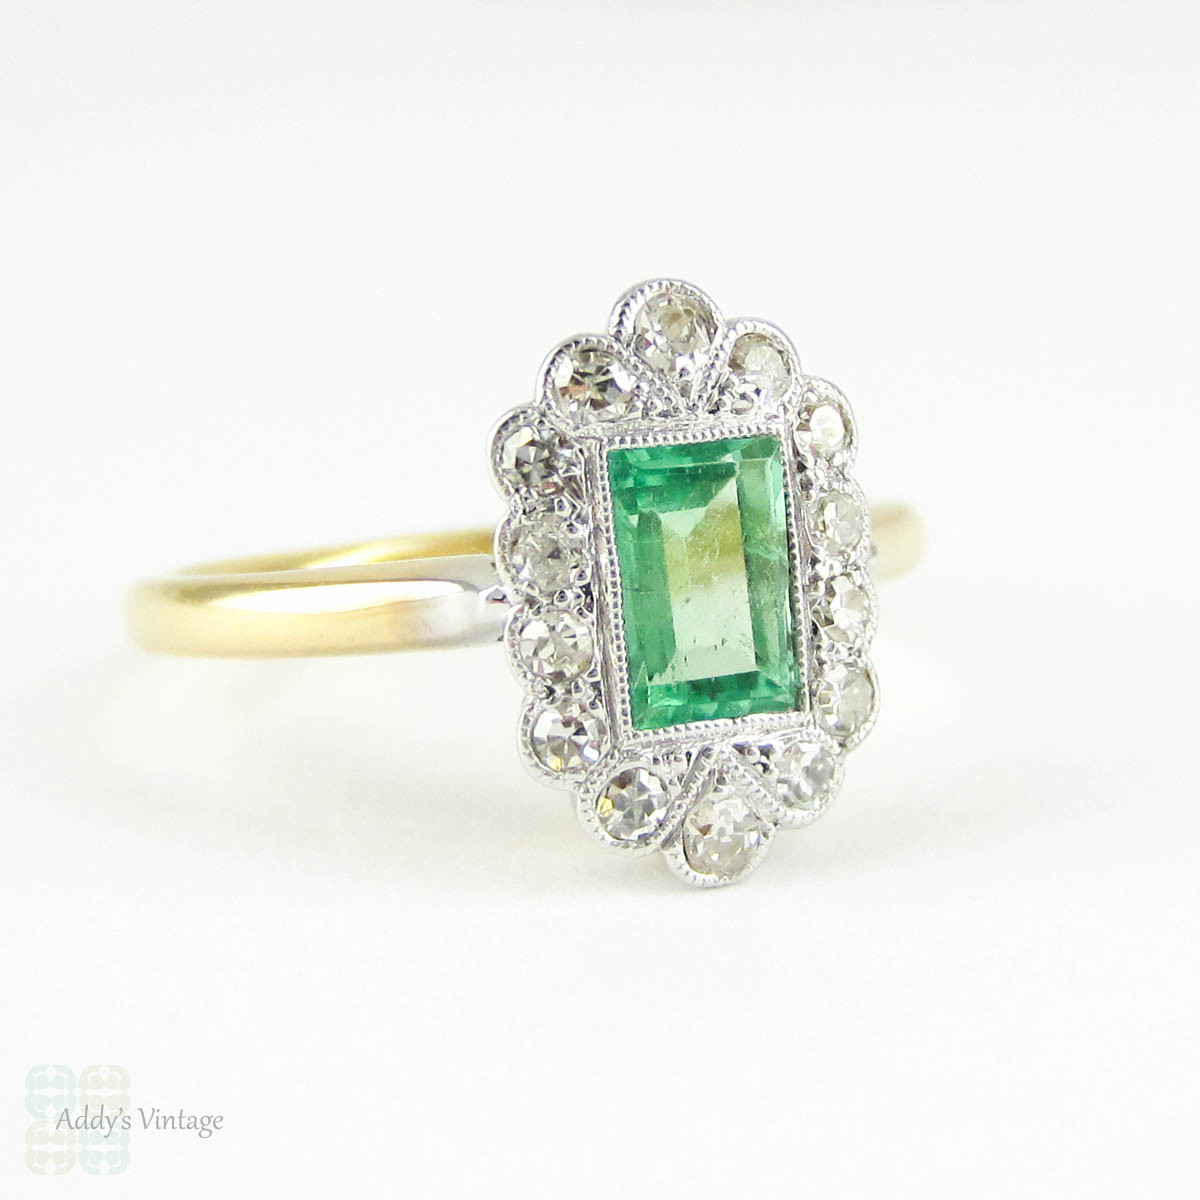 Art Deco Emerald & Diamond Engagement Ring Light Green. Top View Engagement Rings. Low Key Wedding Rings. Rose Quartz Wedding Rings. India Man Rings. Genuine Turquoise Engagement Rings. 0.63 Carat Engagement Rings. Wedding Band Match Wedding Rings. Golden Rose Wedding Rings